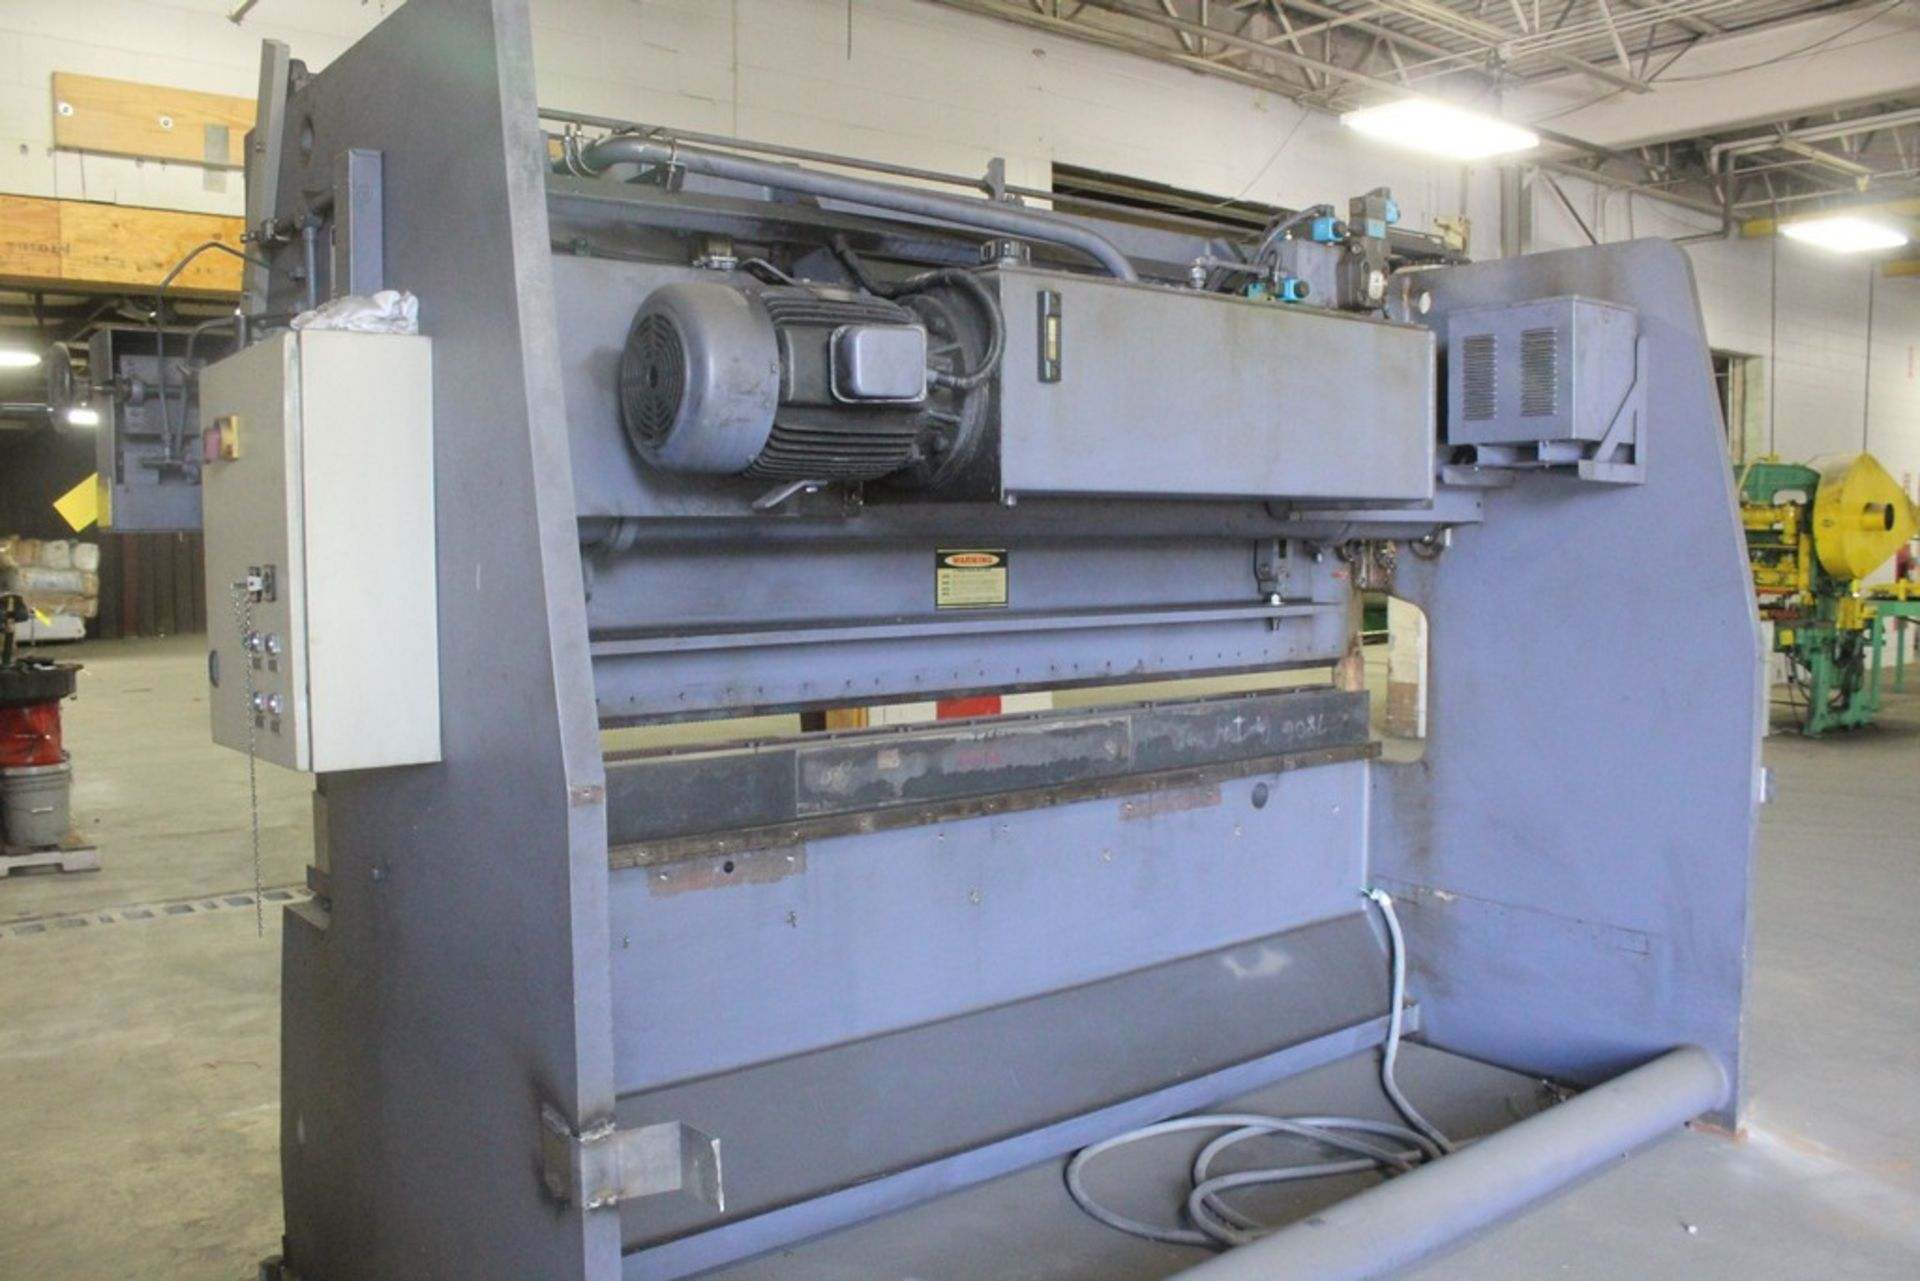 AFM Fabtek Model MPF31-165 Hydraulic Power Press Brake, Serial Number: CHPB9-90080T 165 Tons - - Image 6 of 8